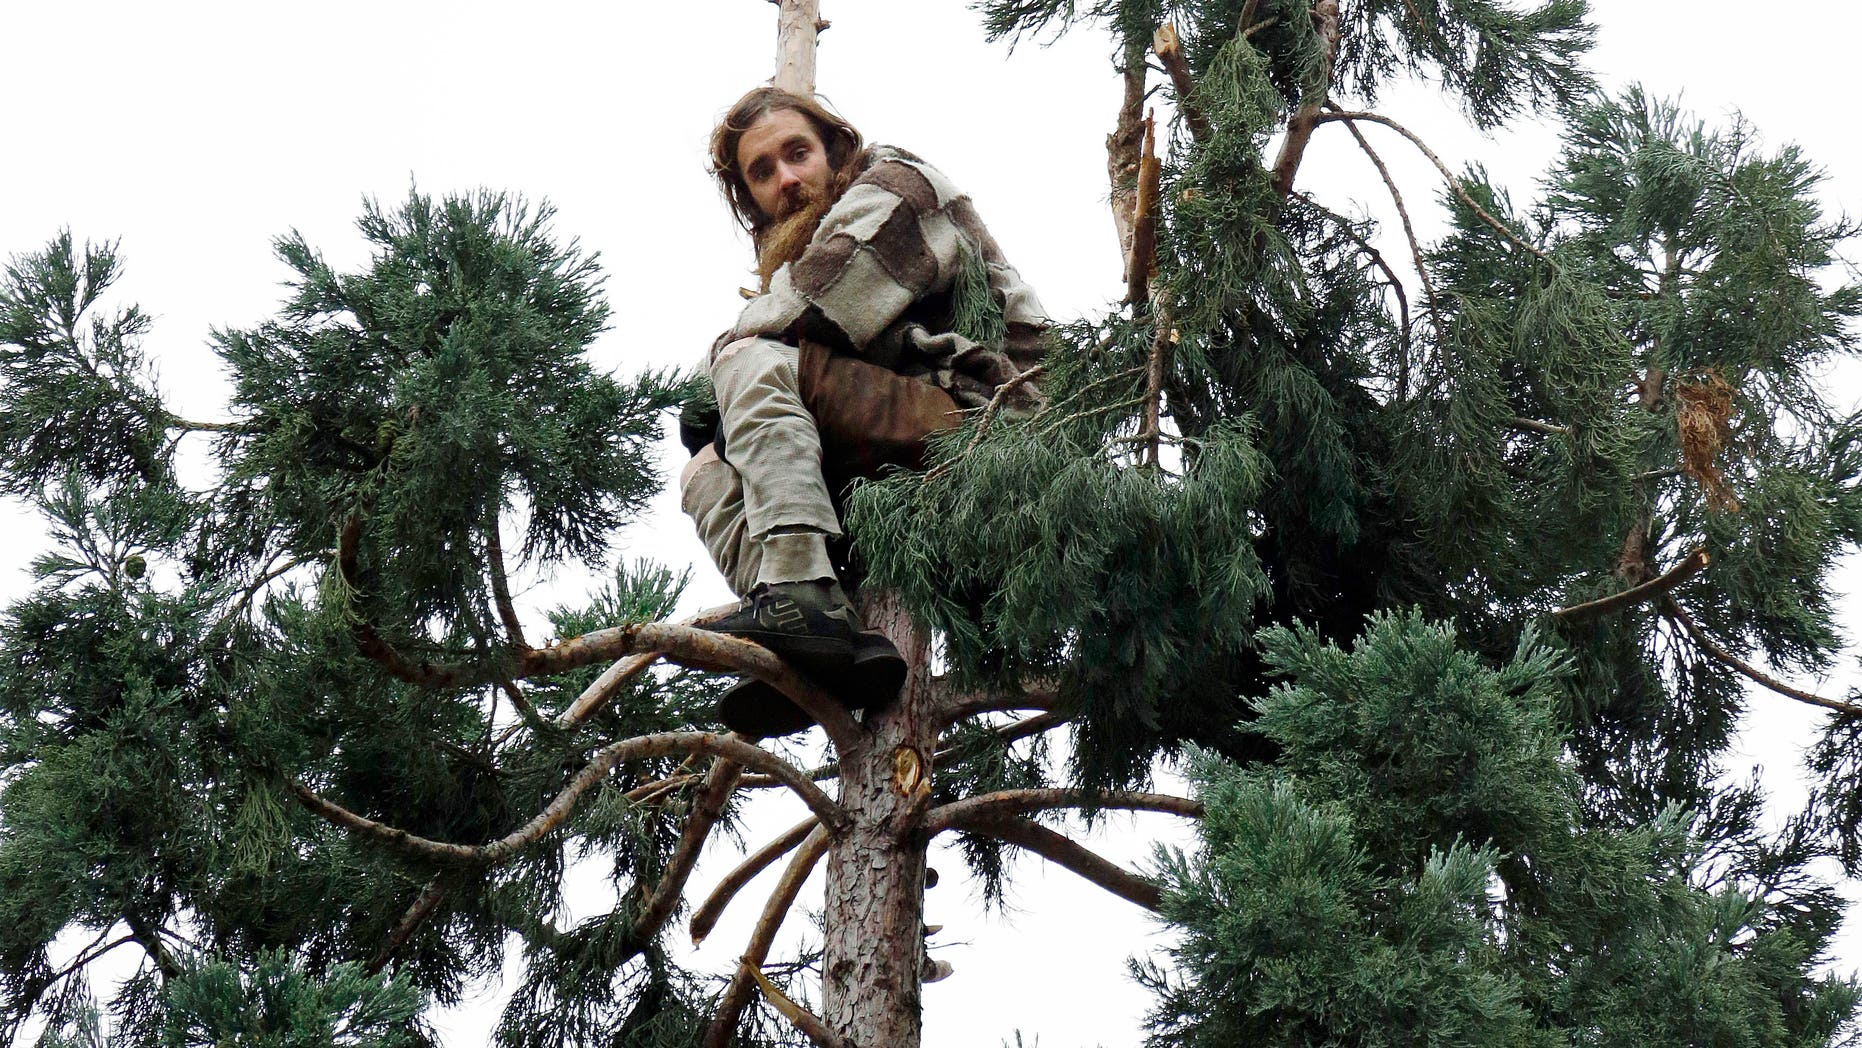 Cody Lee Miller stands near the top of the tree on March 23.